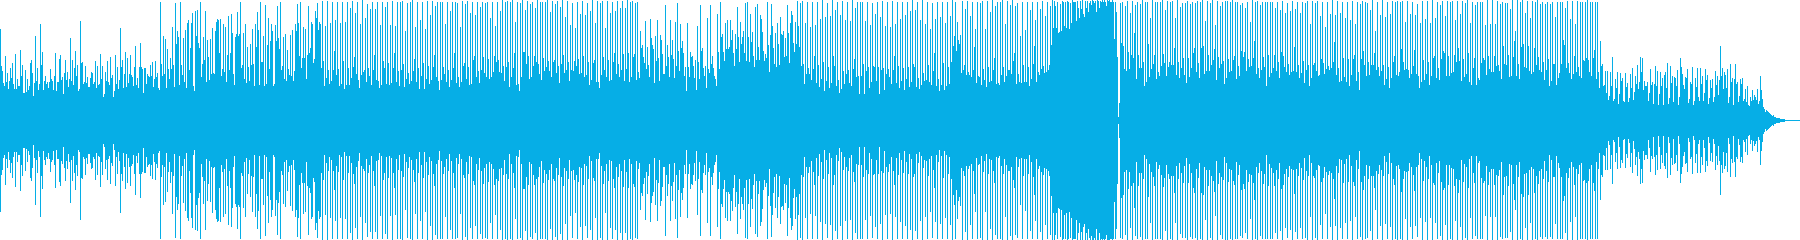 Refreshing theme wedding change evolution's reproduced waveform